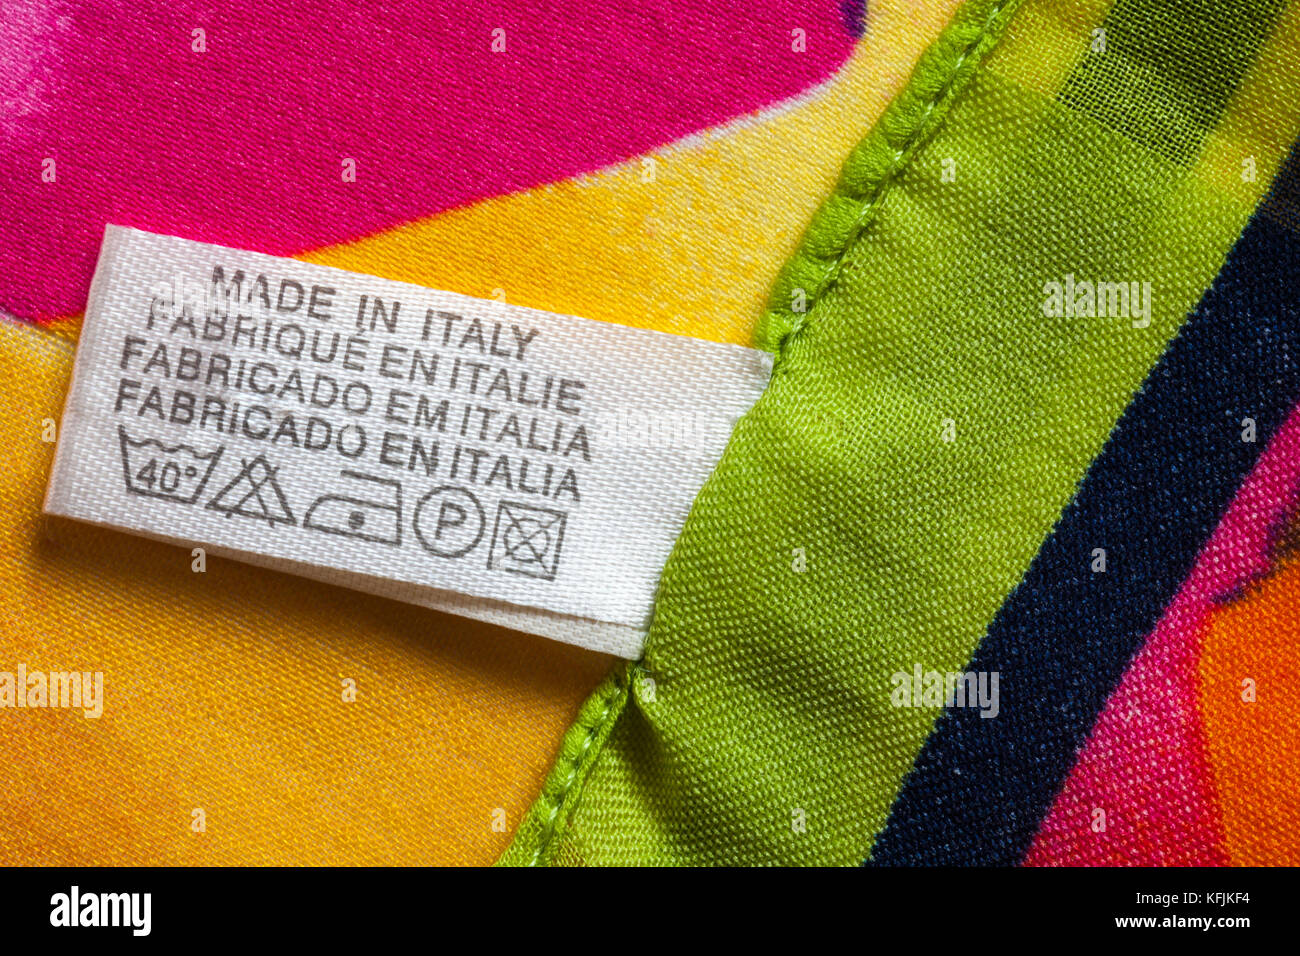 Label in womans scarf made in italy with care wash symbols sold label in womans scarf made in italy with care wash symbols sold in the uk united kingdom great britain biocorpaavc Choice Image